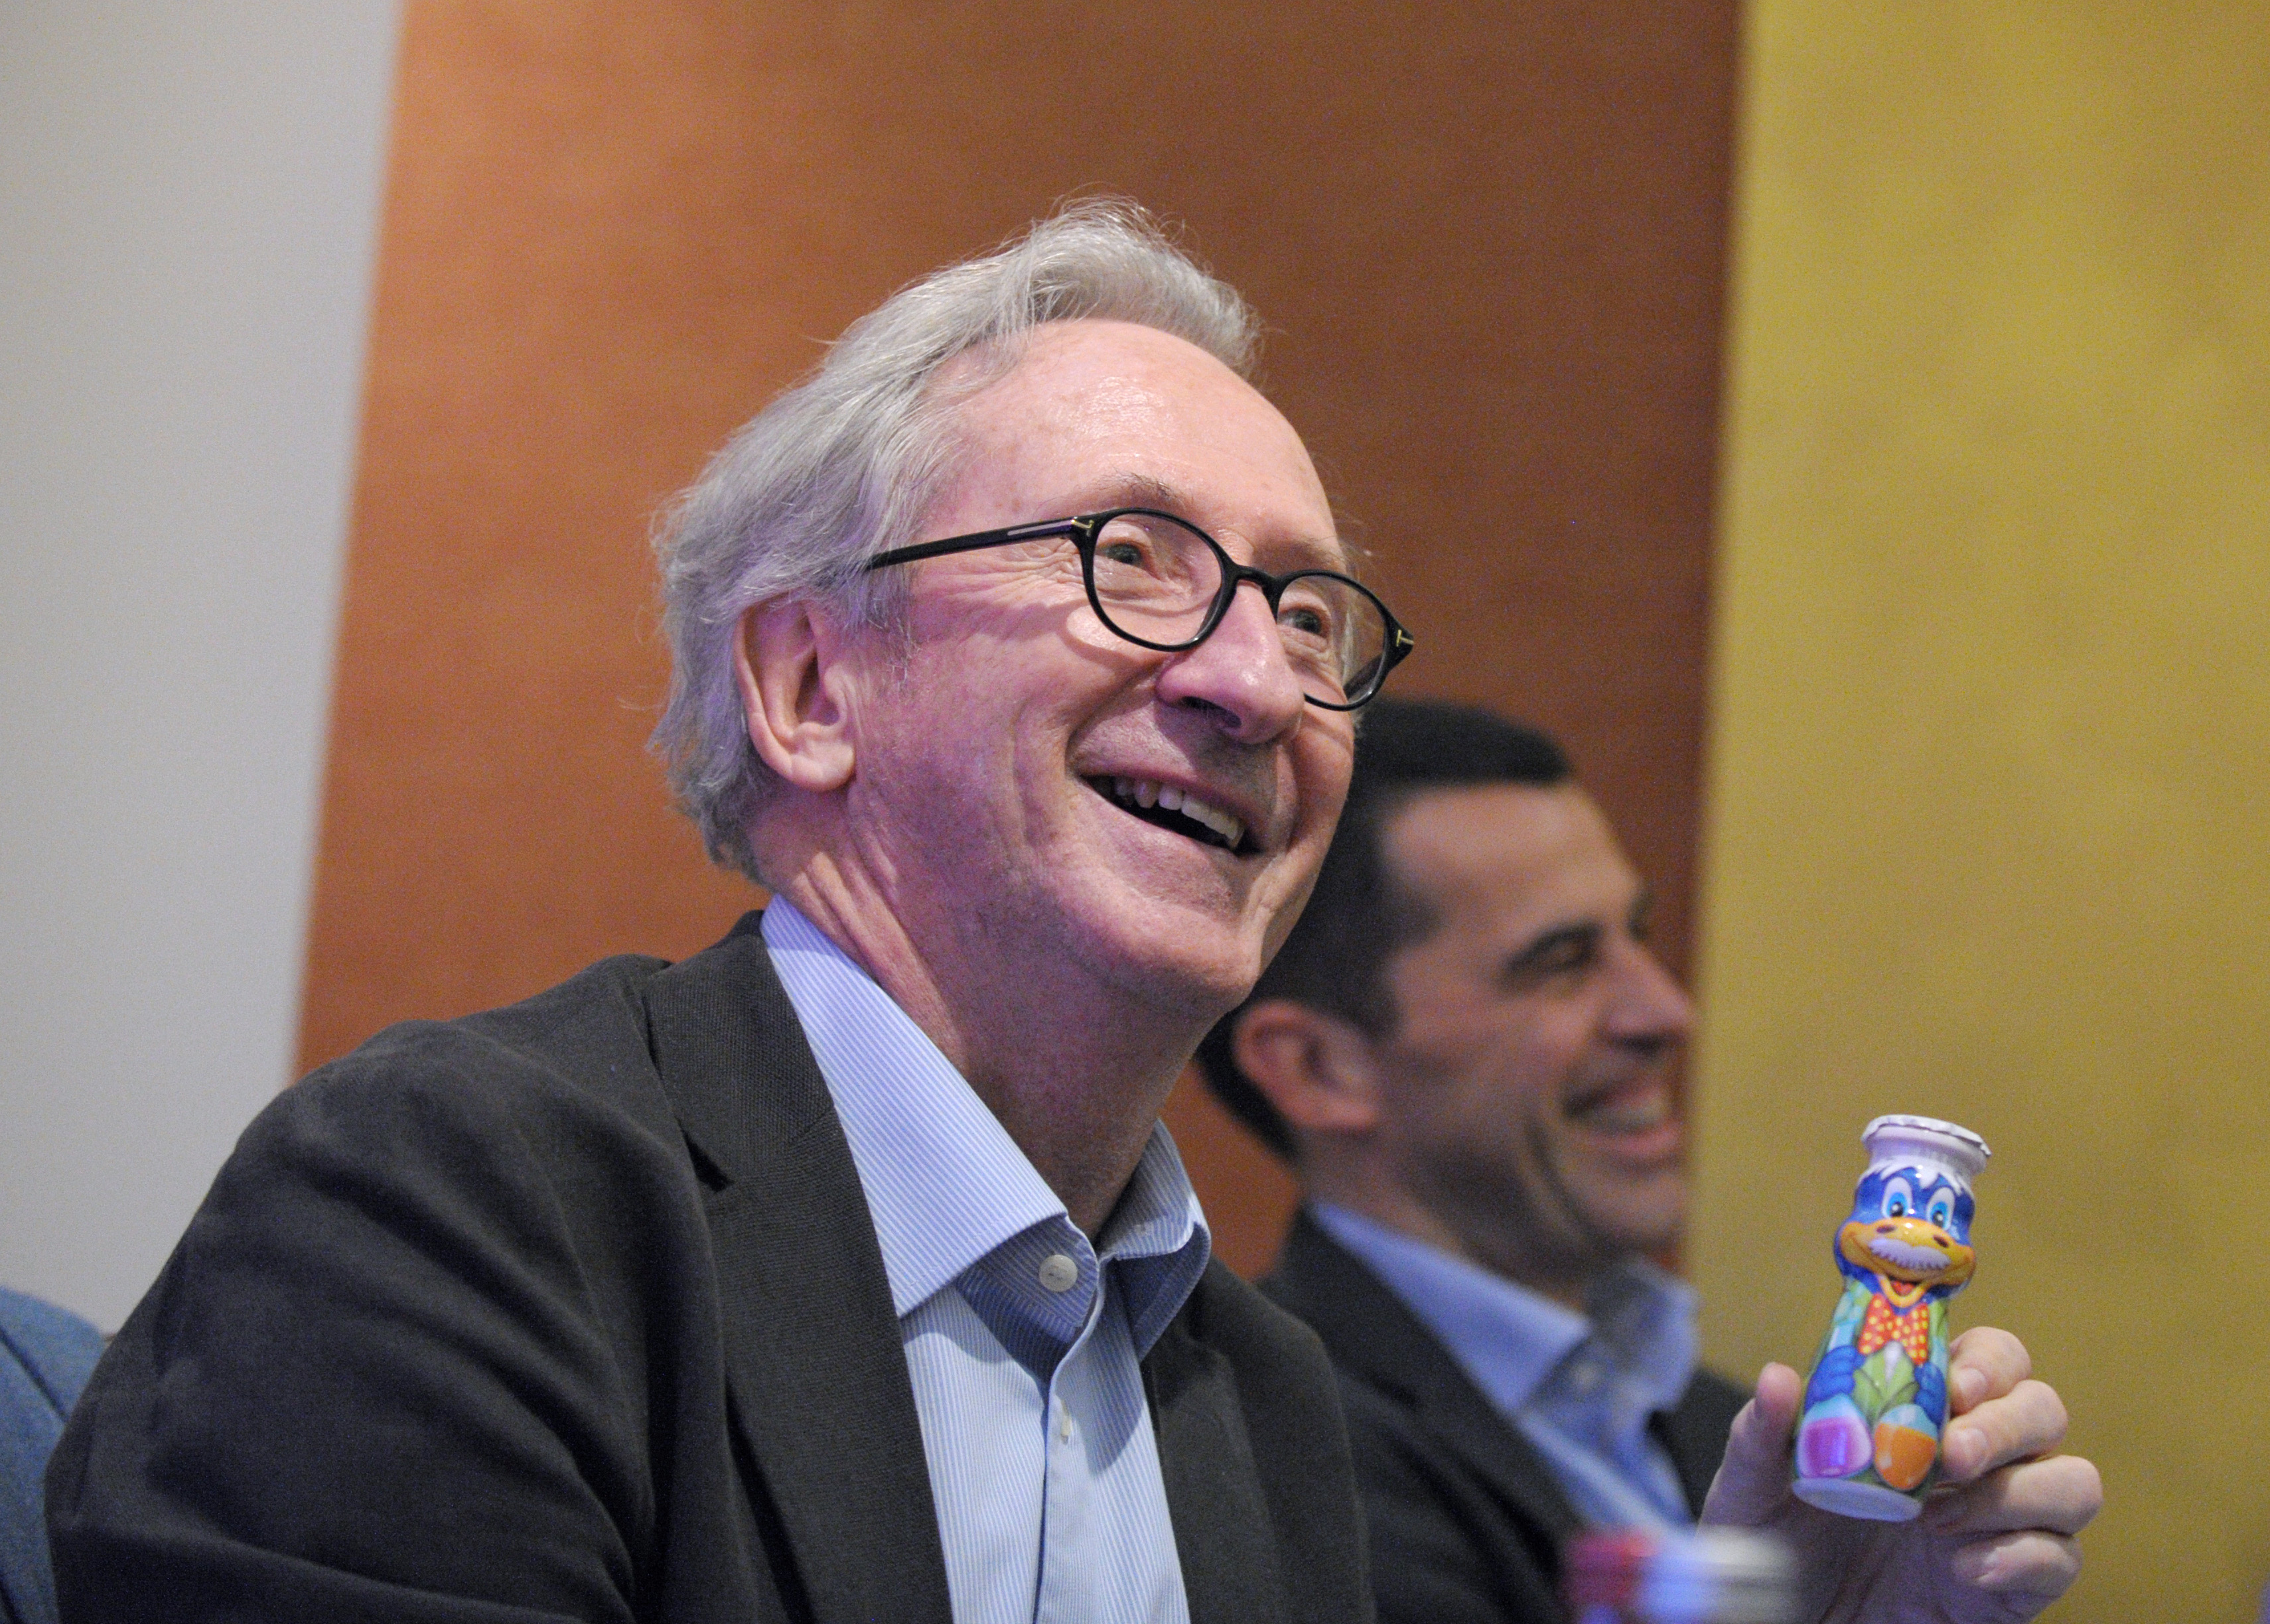 FRANCE, Paris : French dairy food giant Danone Chairman Franck Riboud smiles during a press conference to present the group's 2013 results in Paris on February 20, 2014.